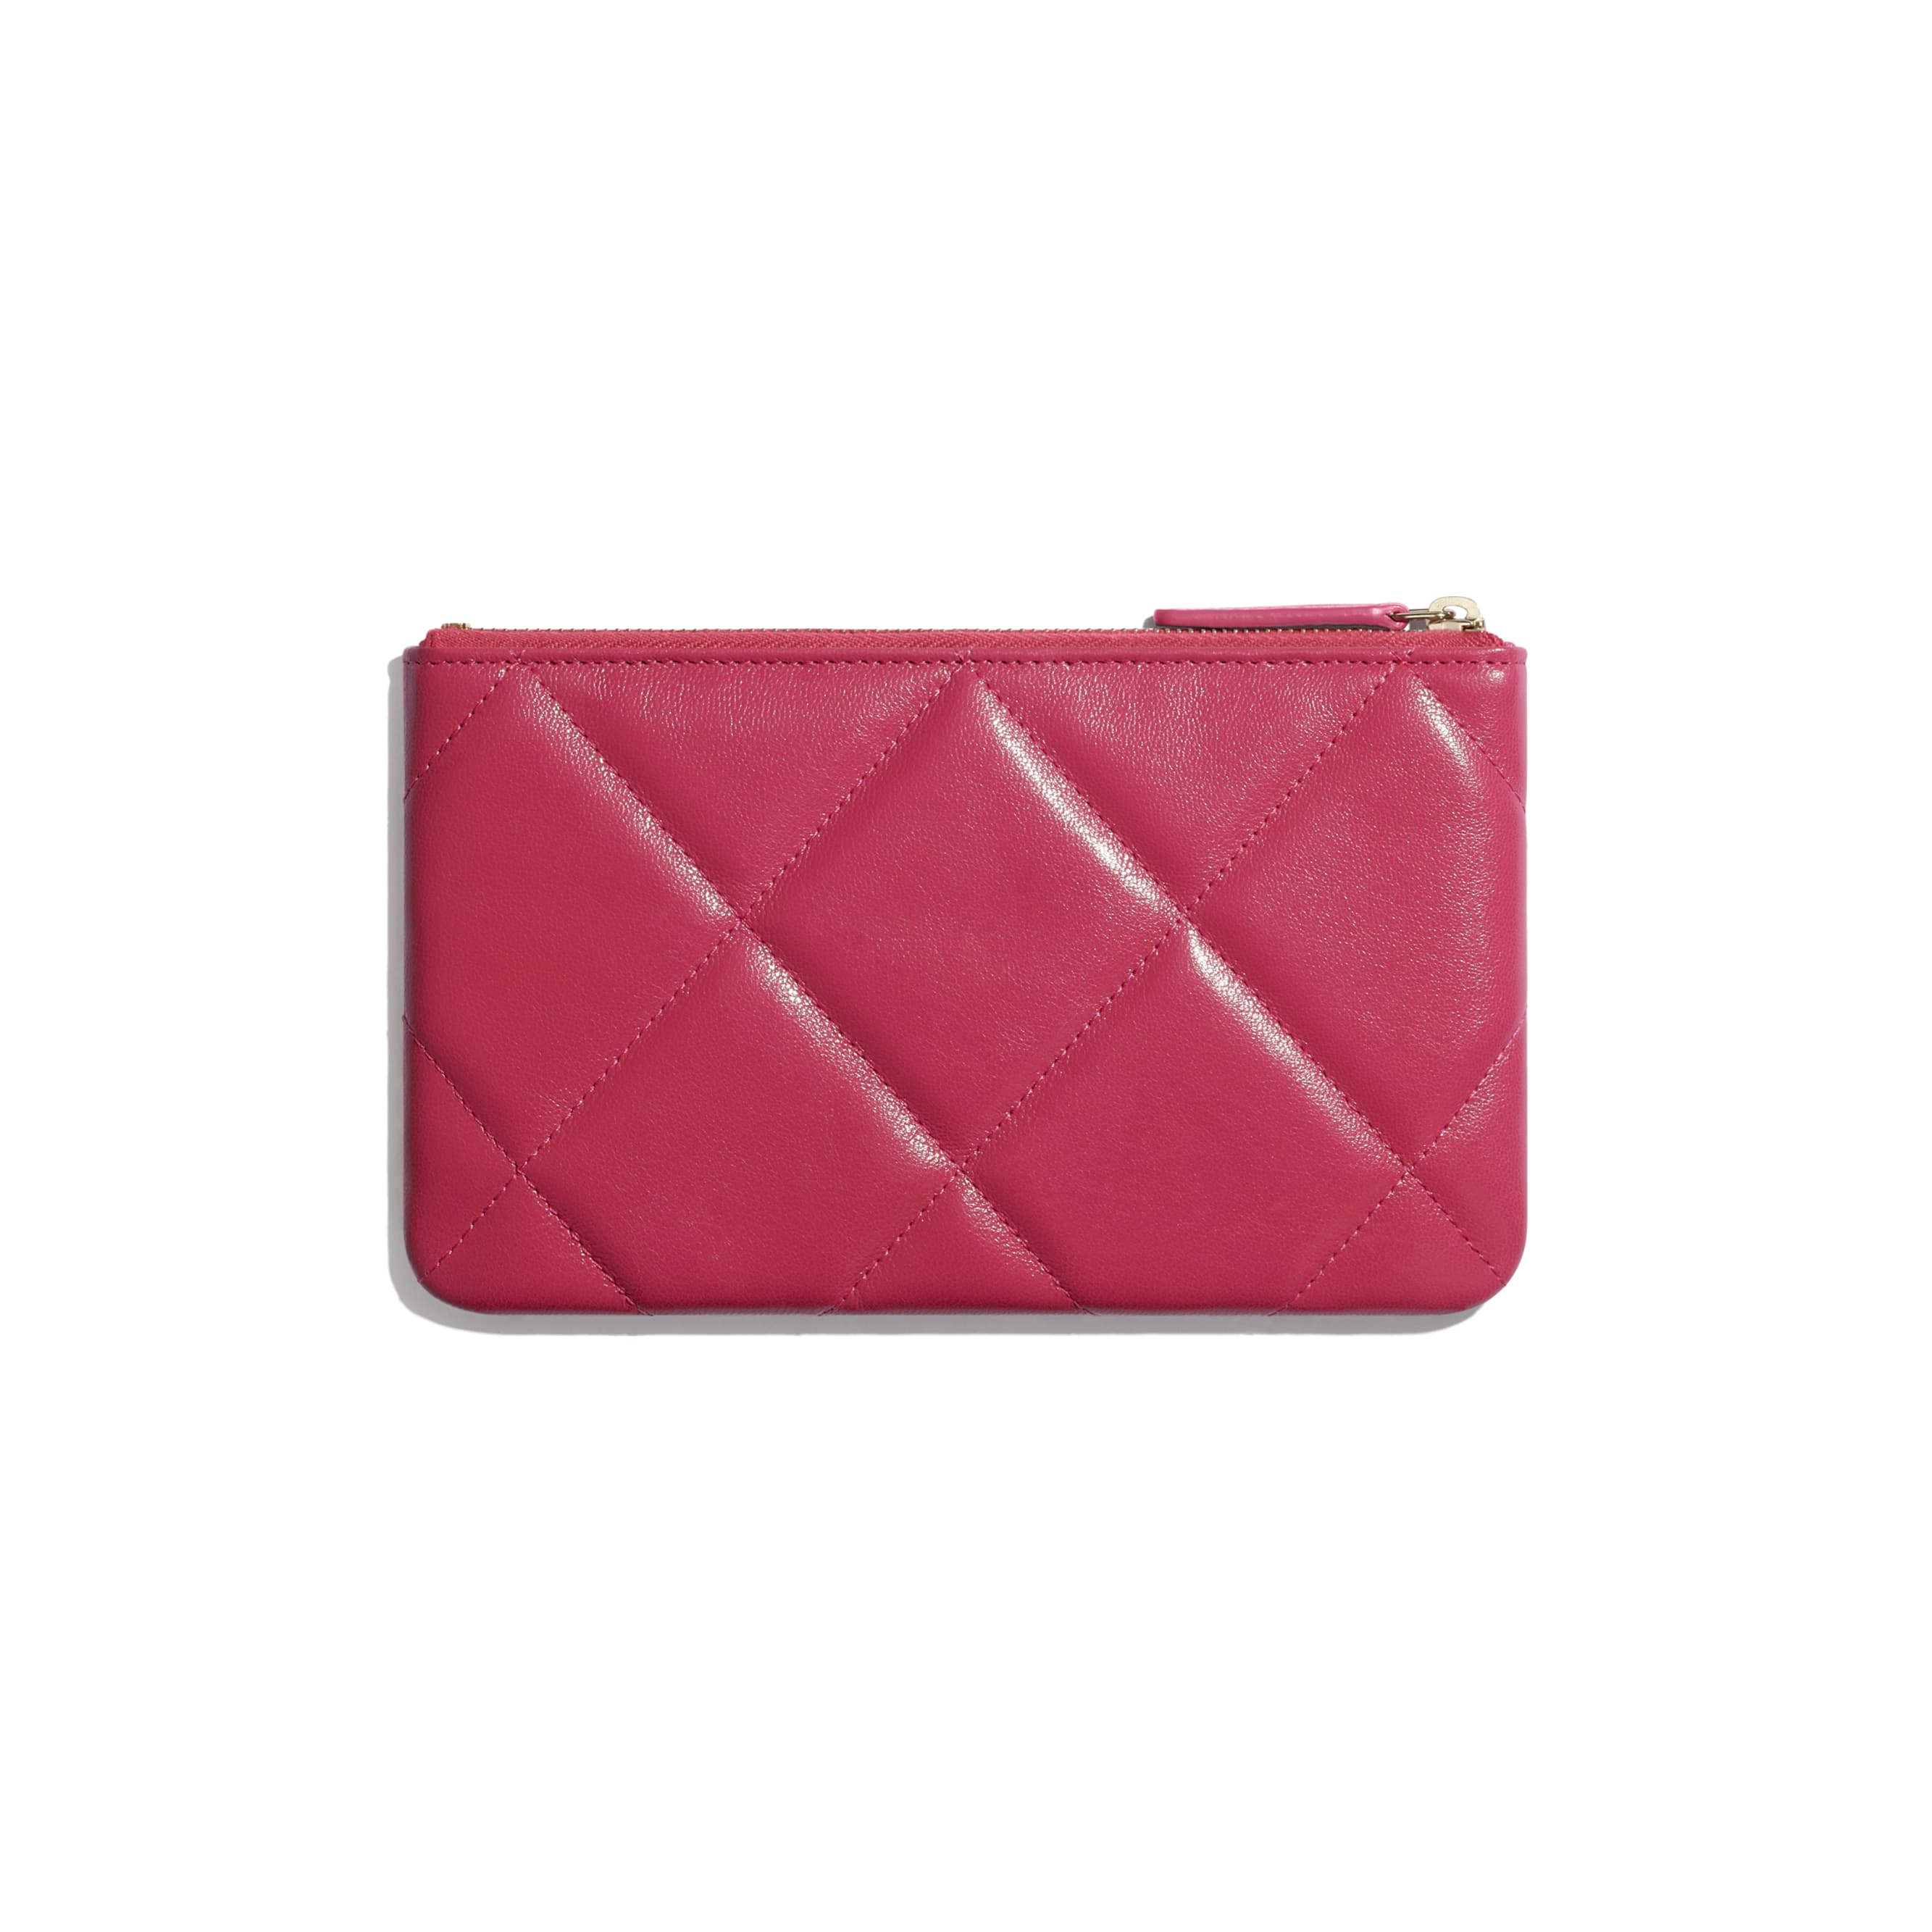 CHANEL 19 Small Pouch - Pink - Shiny Goatskin & Gold-Tone Metal - CHANEL - Alternative view - see standard sized version